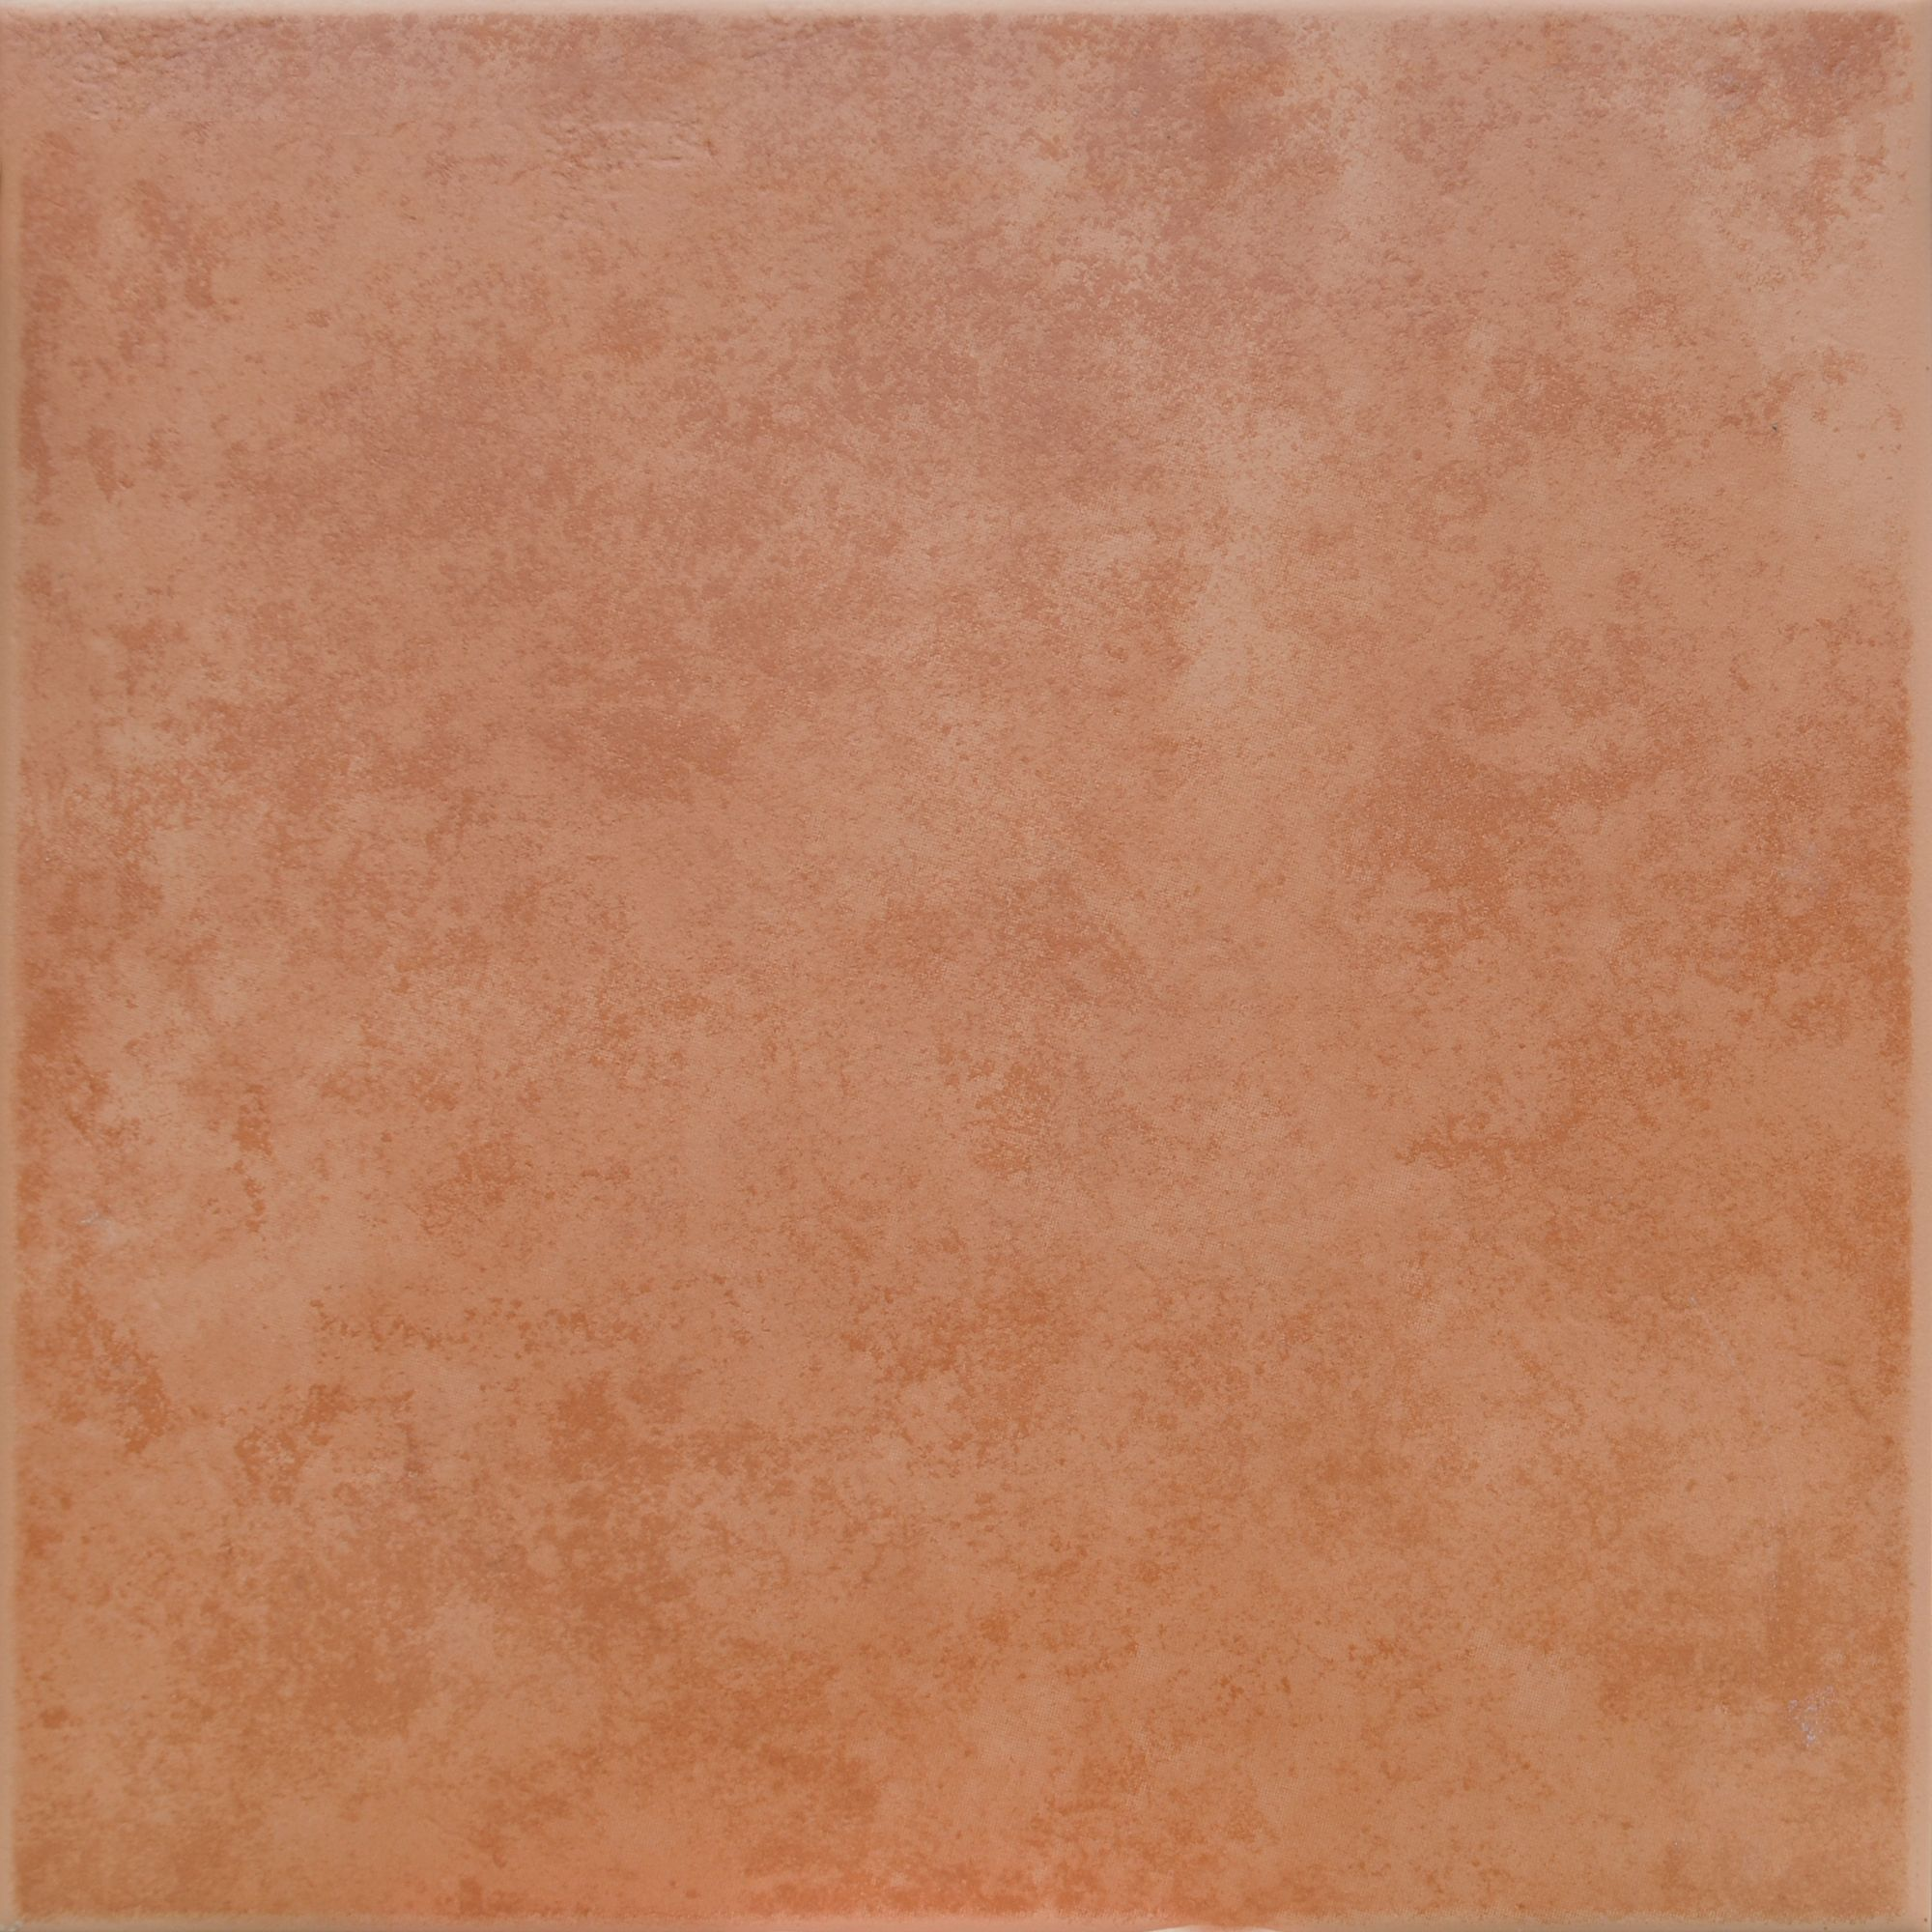 Tile ceram agra coulson 330x330 terra bunnings warehouse outdoor find cotto tiles 330 x thaicera agra terracotta ceramic floor tile at bunnings warehouse visit your local store for the widest range of paint decorating dailygadgetfo Images